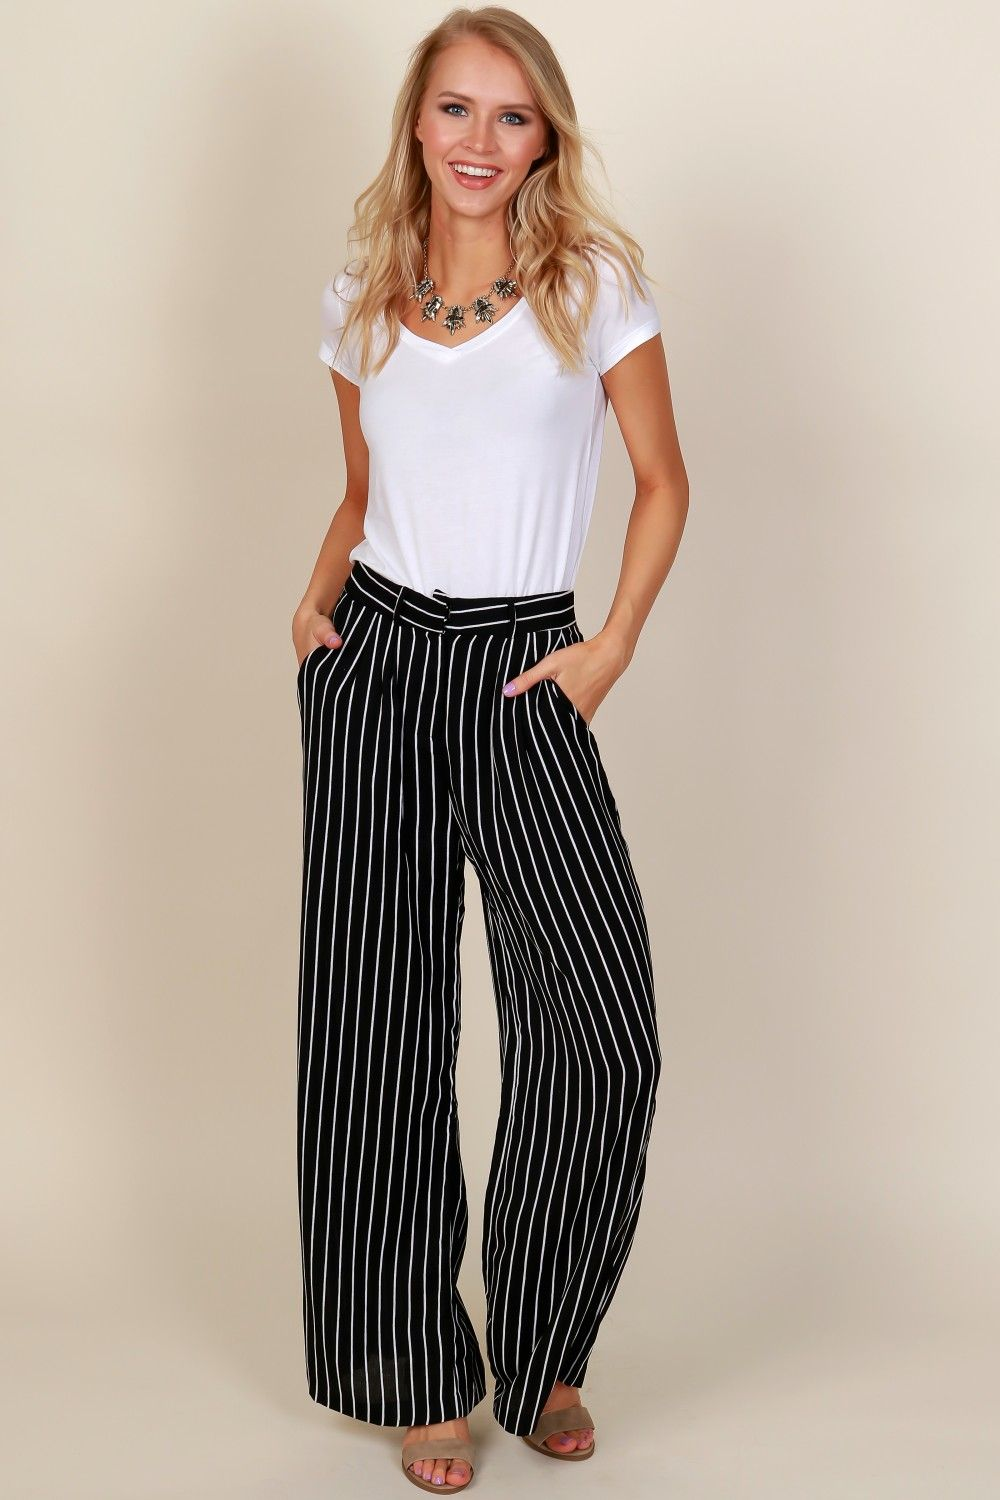 d0dc17acadb Pin Me Down Striped Pants Black White in 2019